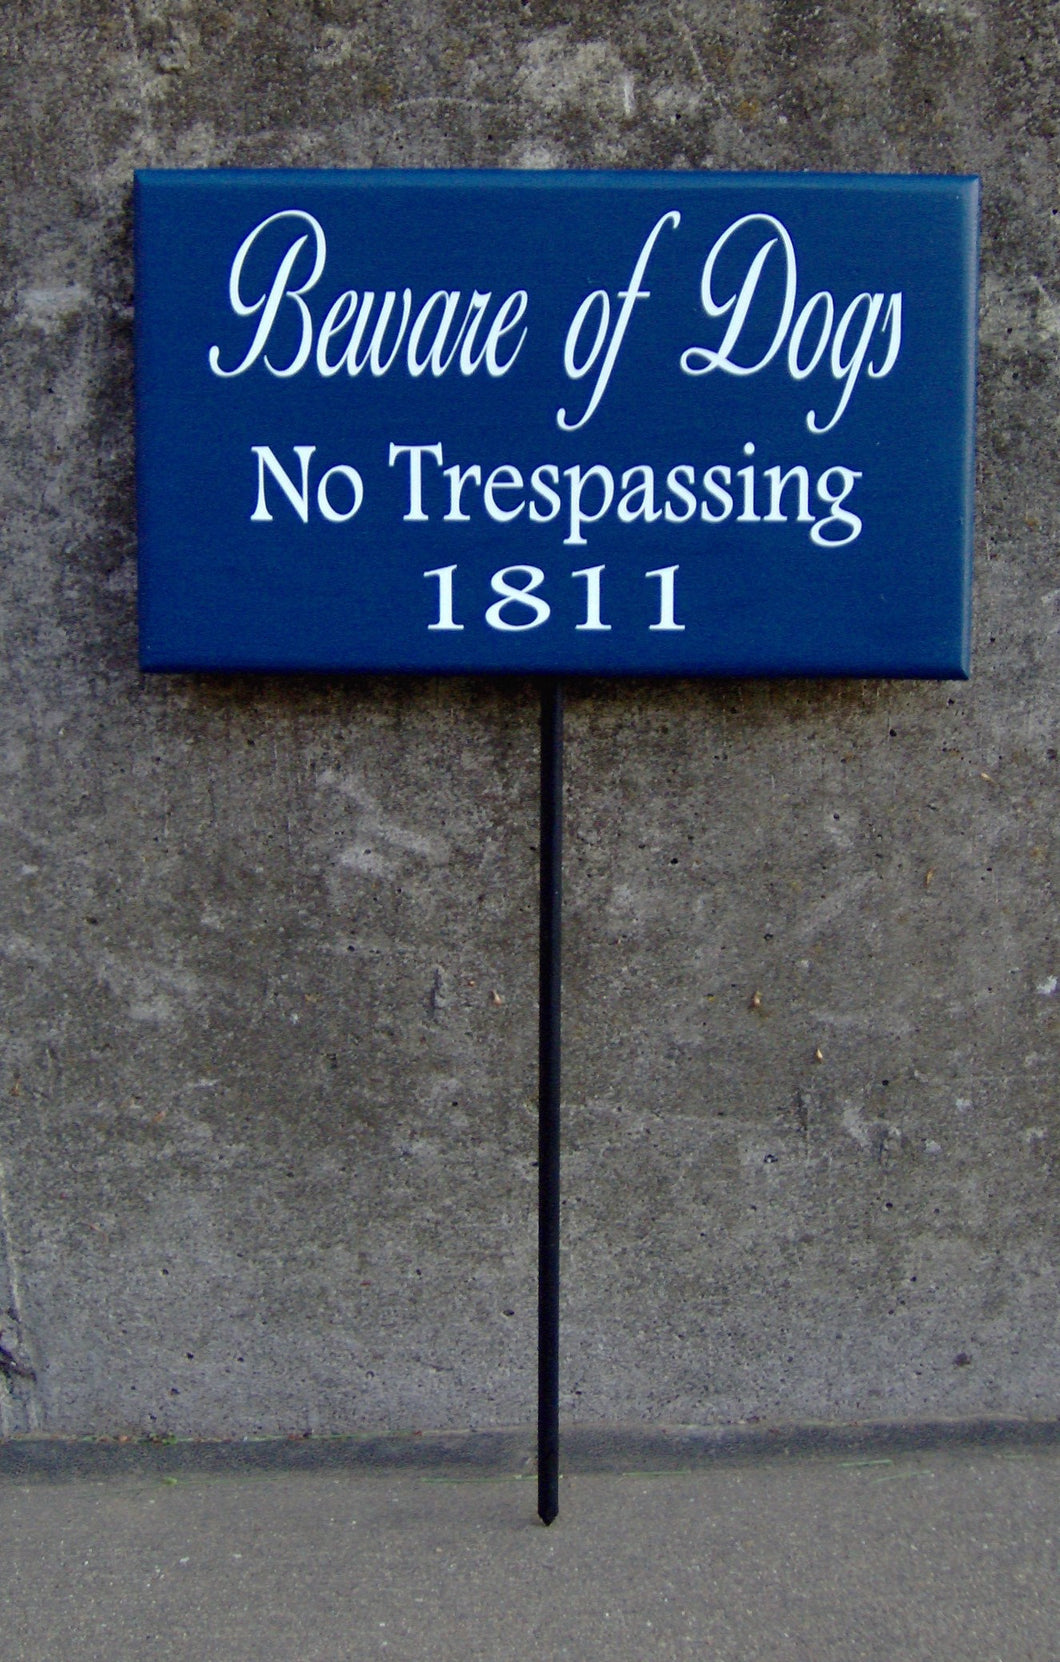 Beware Of Dogs No Trespassing House Number Wood Vinyl Stake Sign Dog Decor Address Front Porch Yard Garden Private Do Not Disturb Navy Blue - Heartfelt Giver